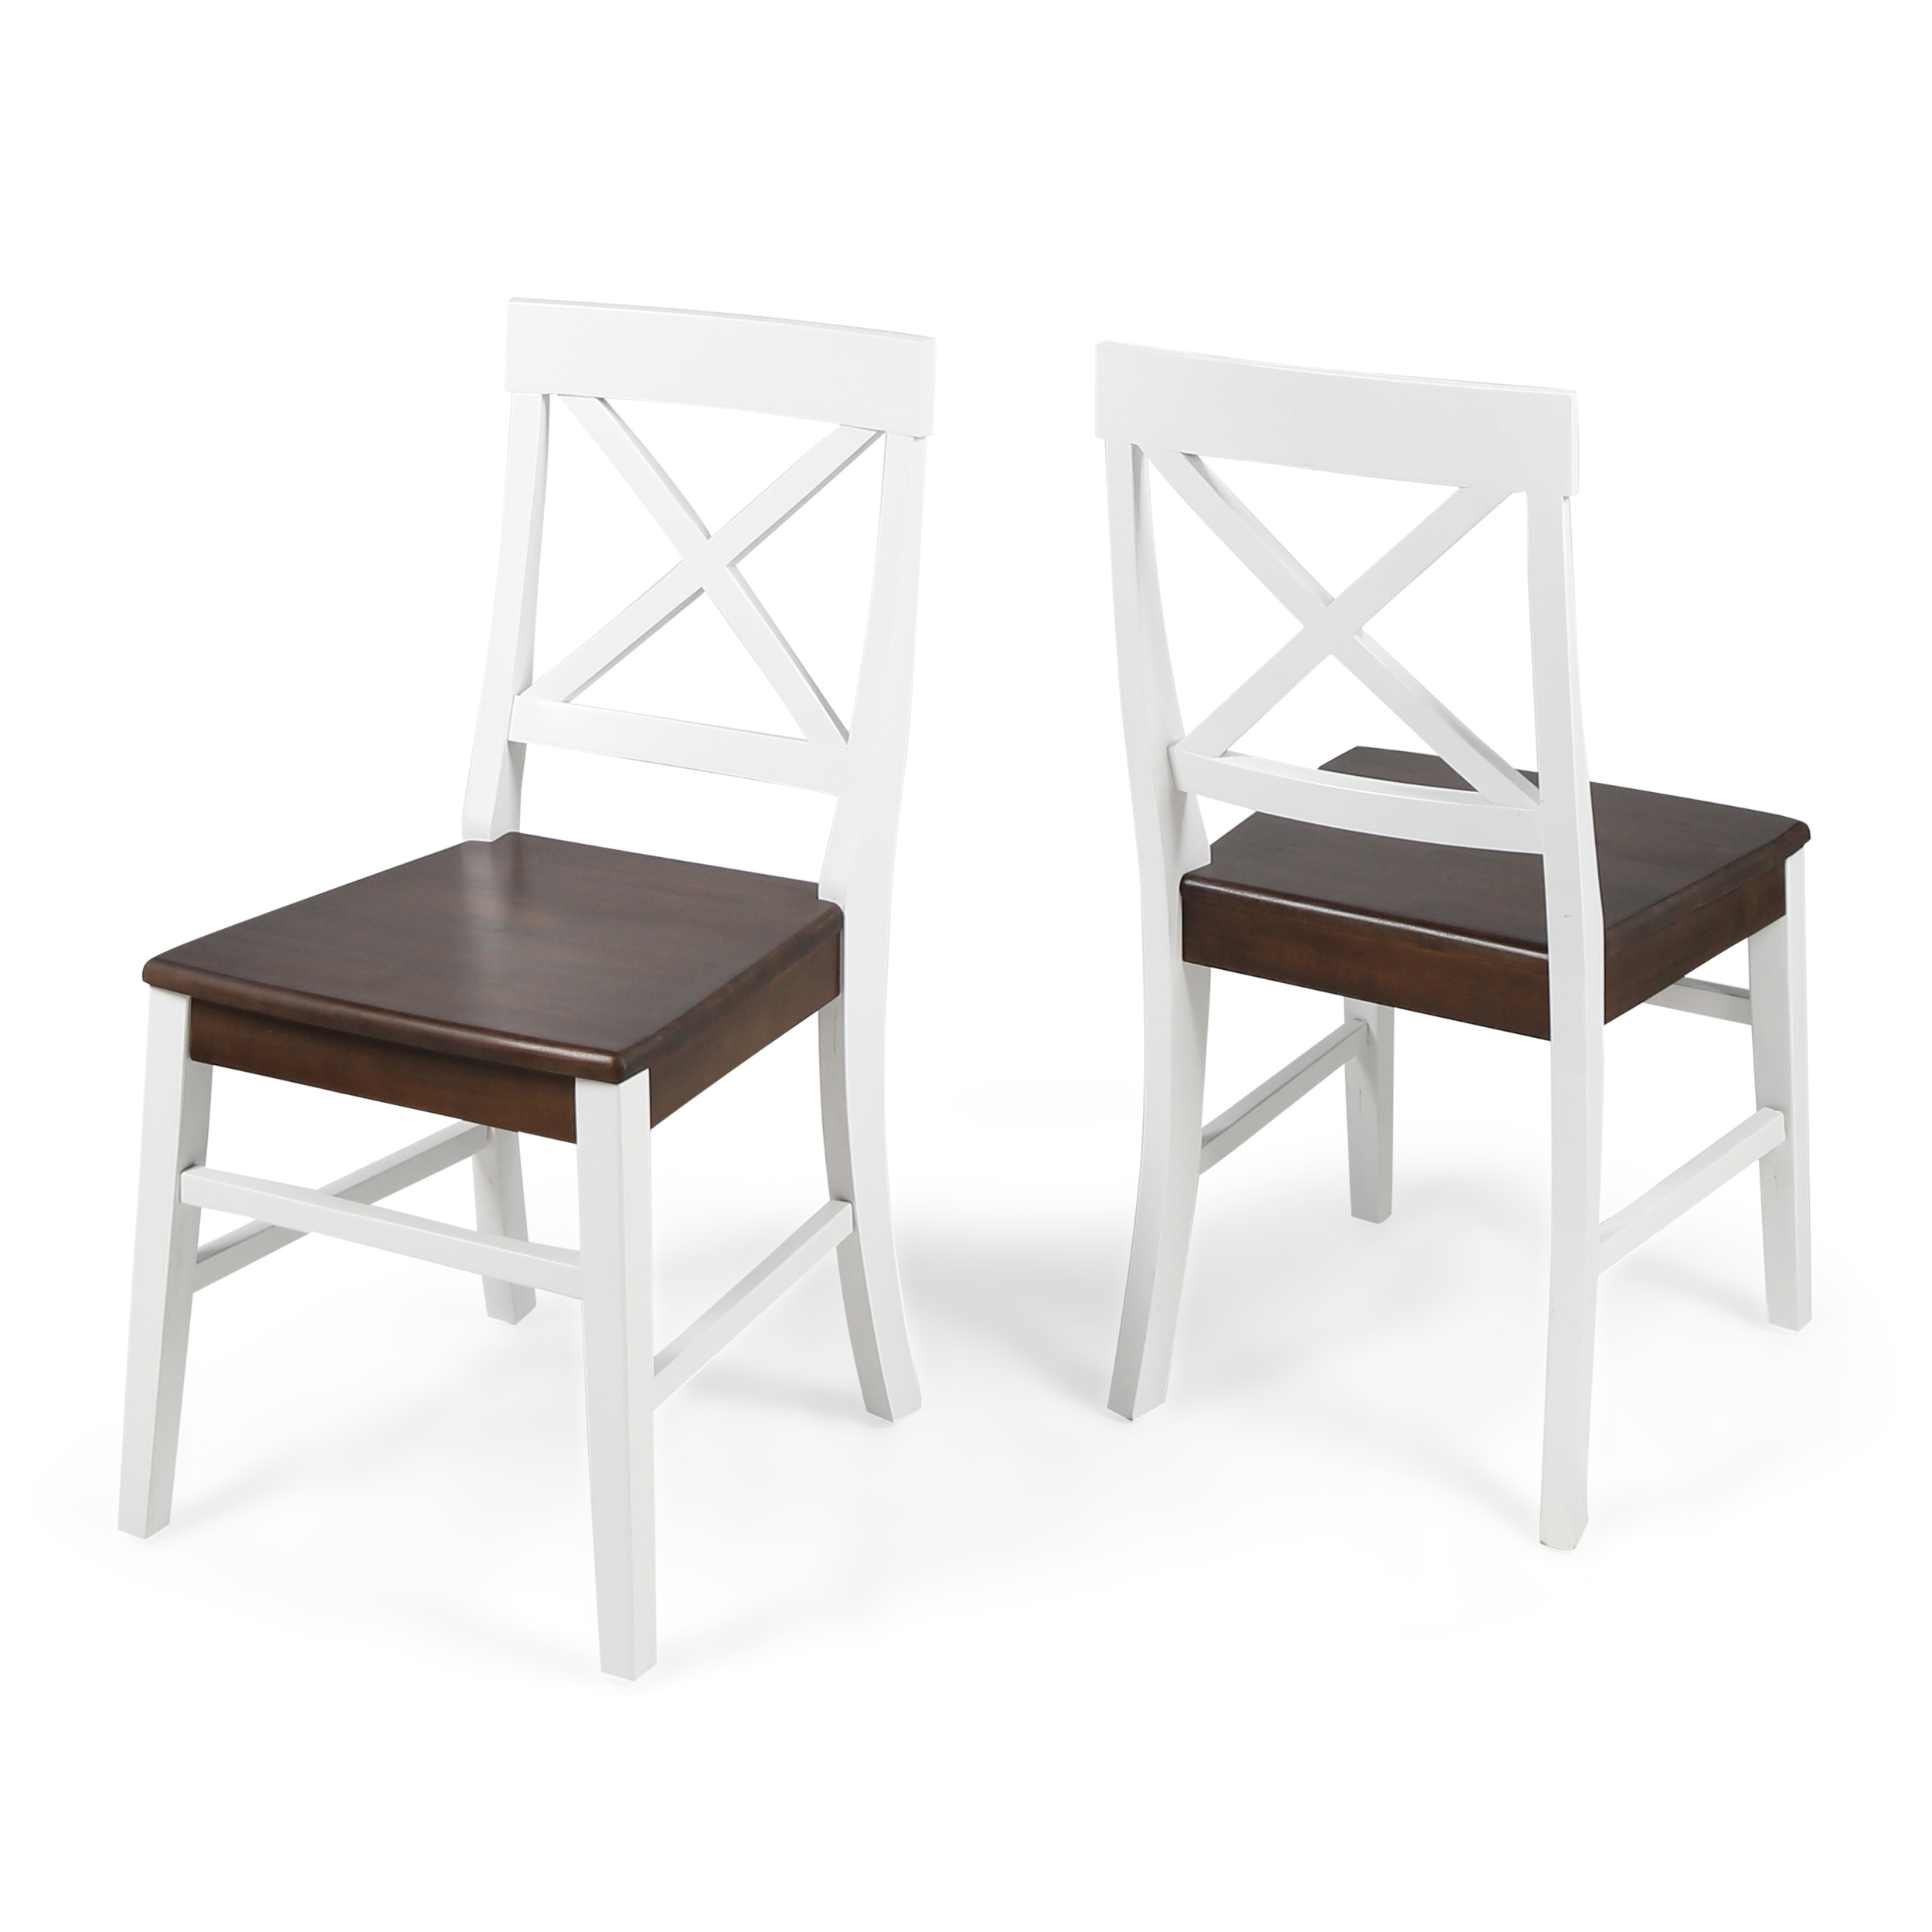 White Wooden Dining Chairs Truda Farmhouse Acacia Wood Dining Chairs With Frame Walnut And White Finish